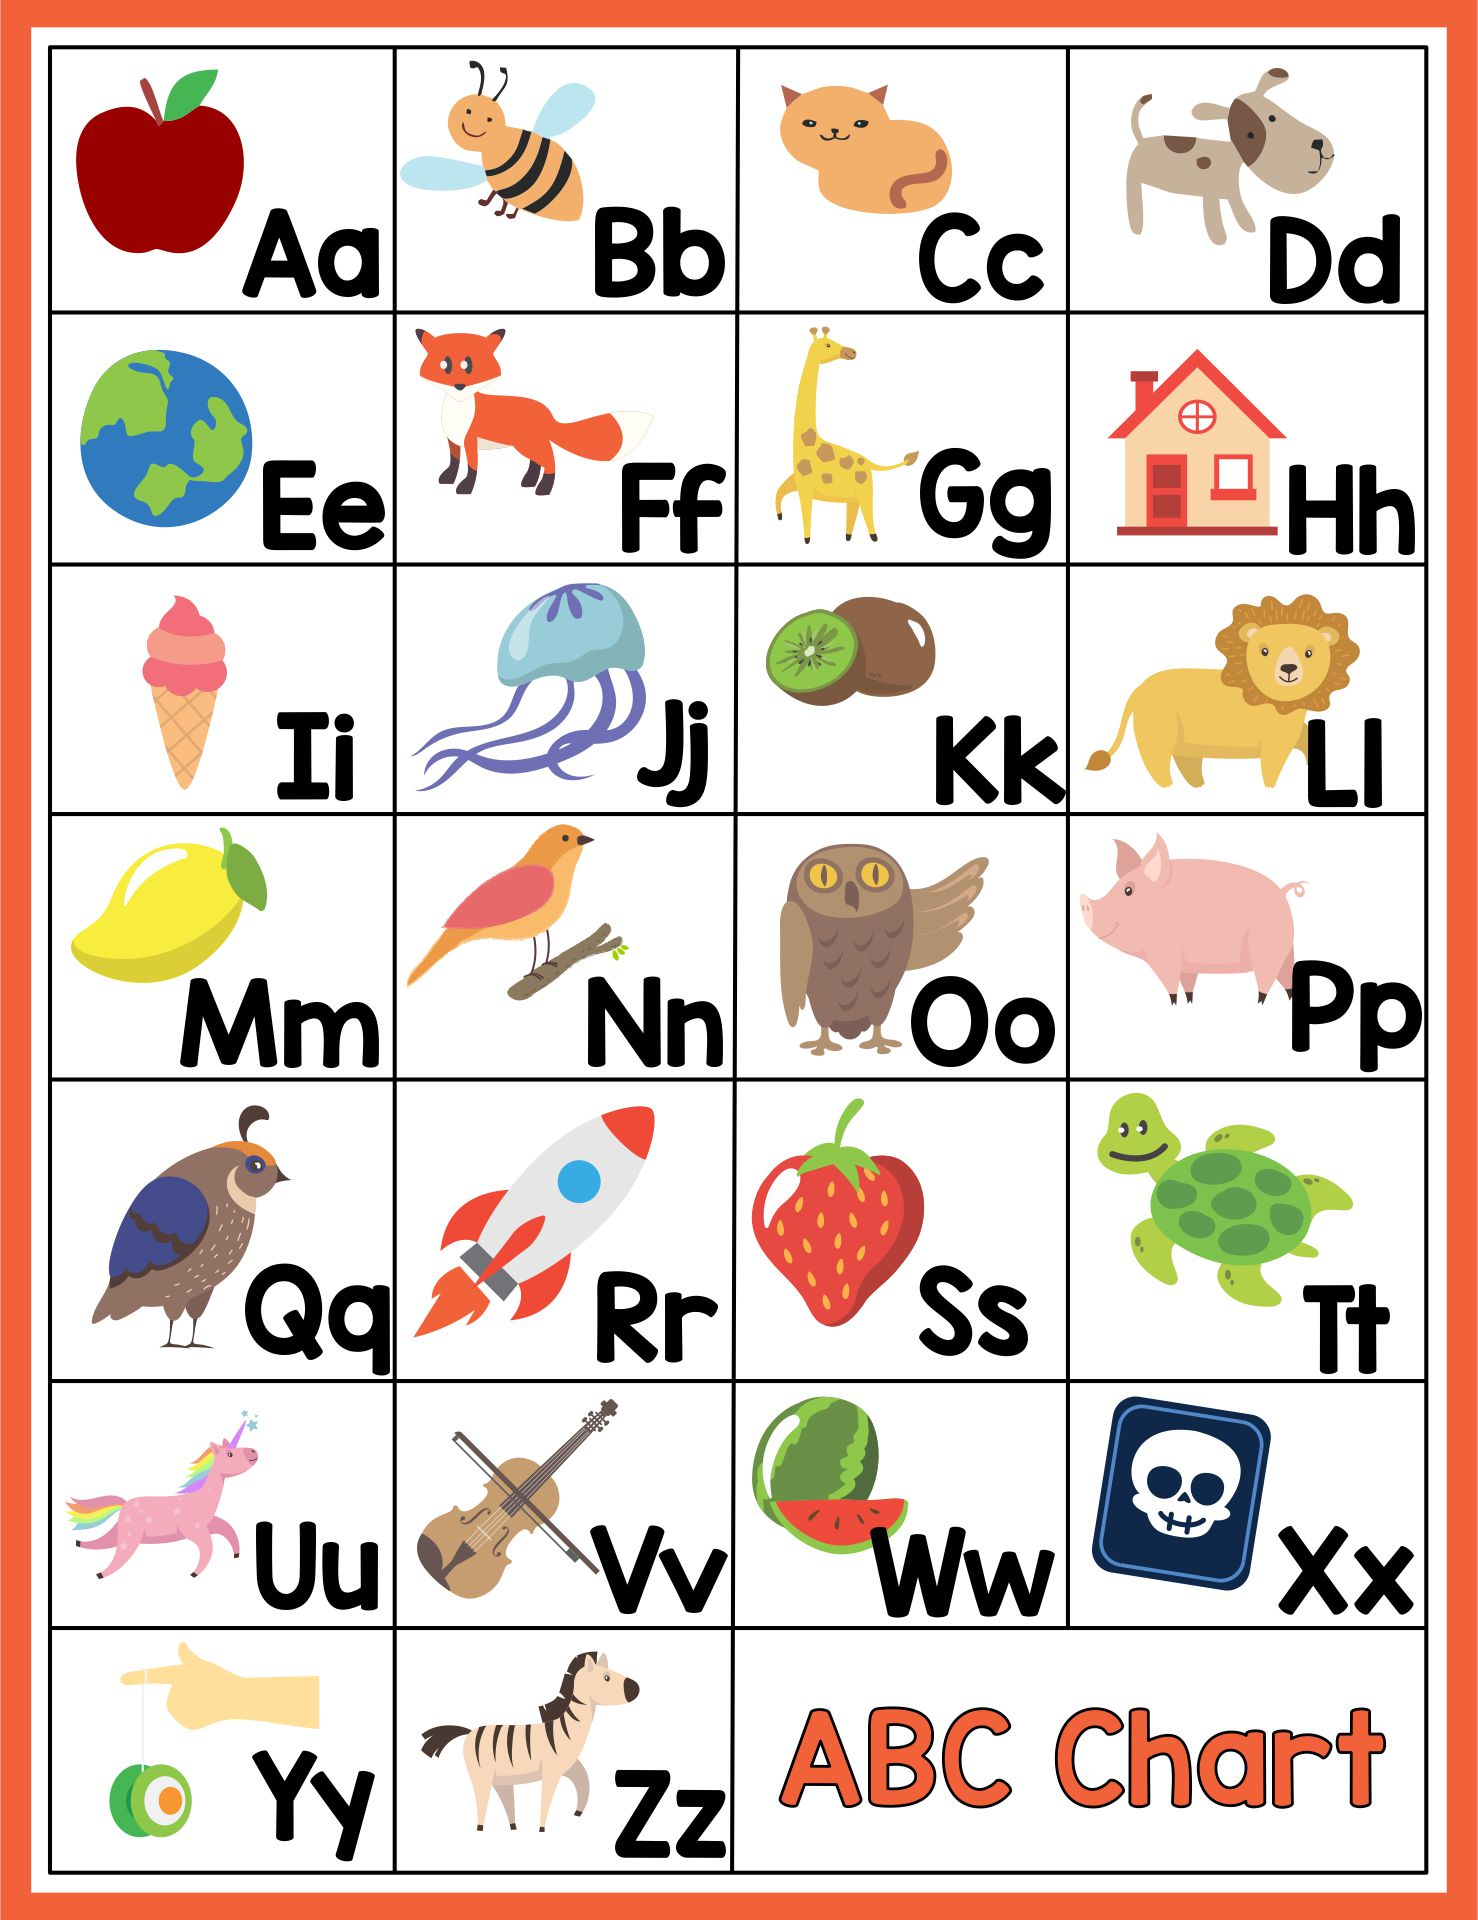 Printable ABC Chart with Pictures